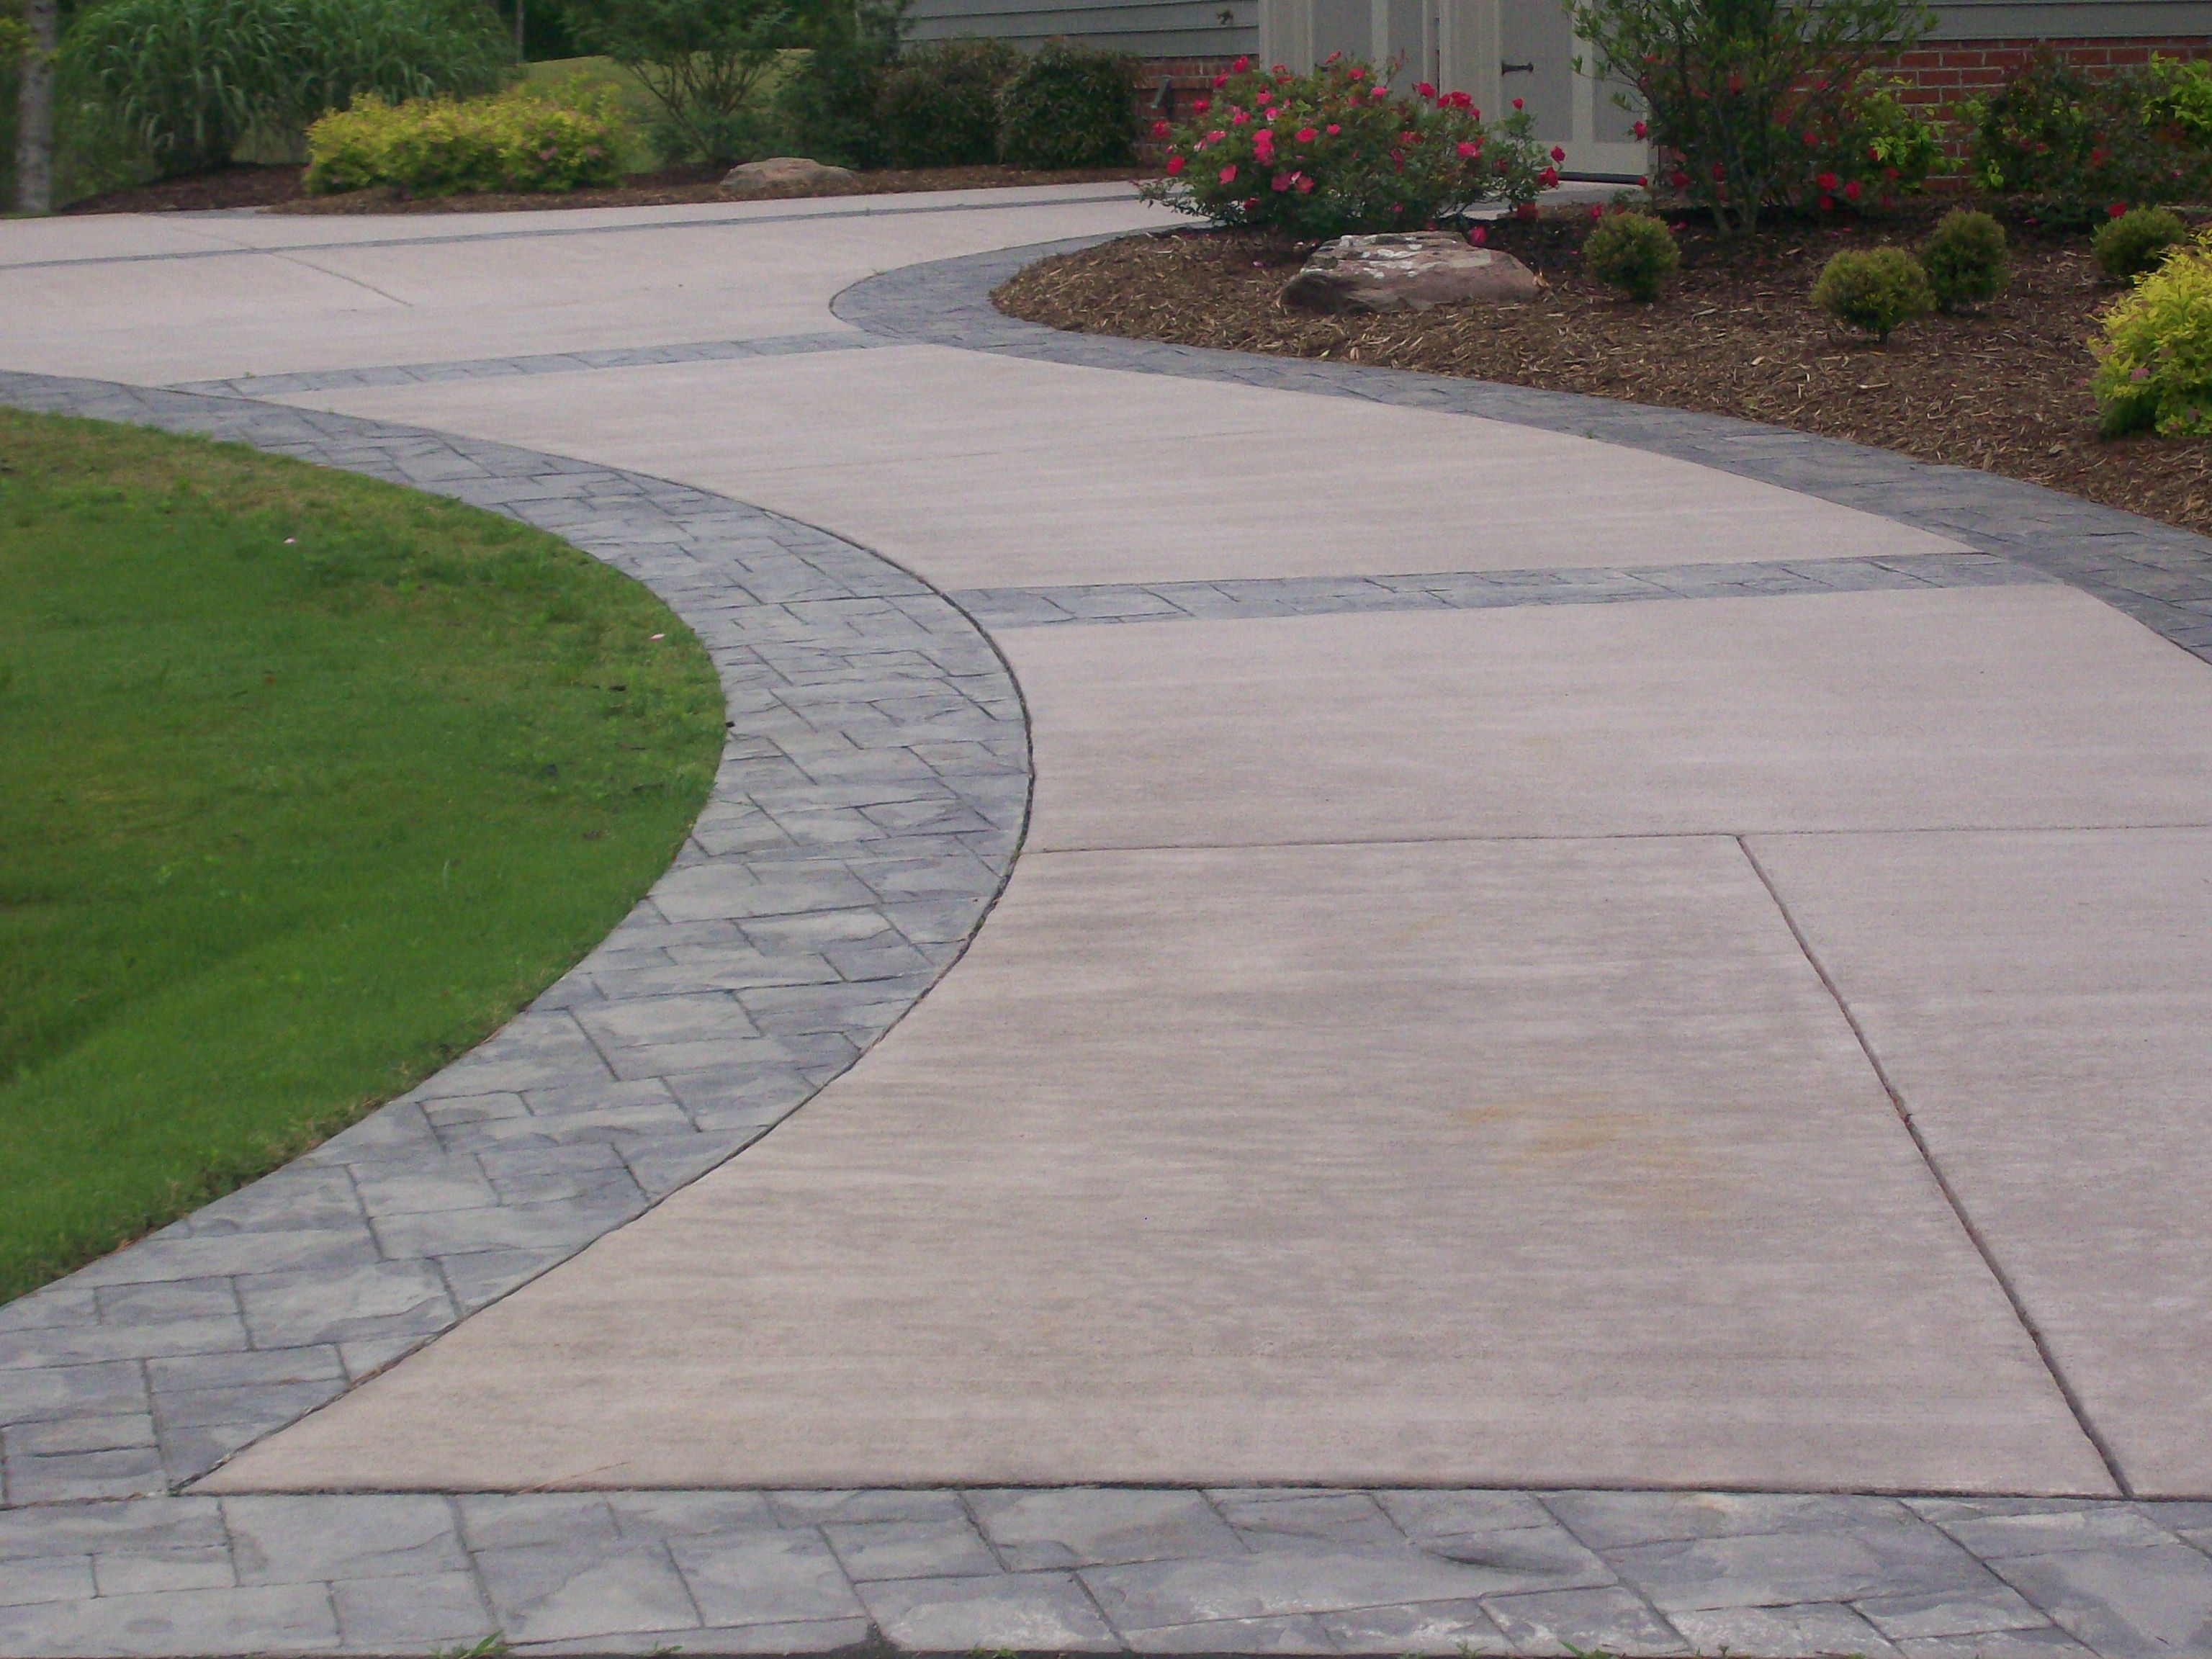 Pin By Daniele D Addario Sergi On Stamped Concrete Driveway Stamped Concrete Driveway Driveway Design Stamped Concrete Patio